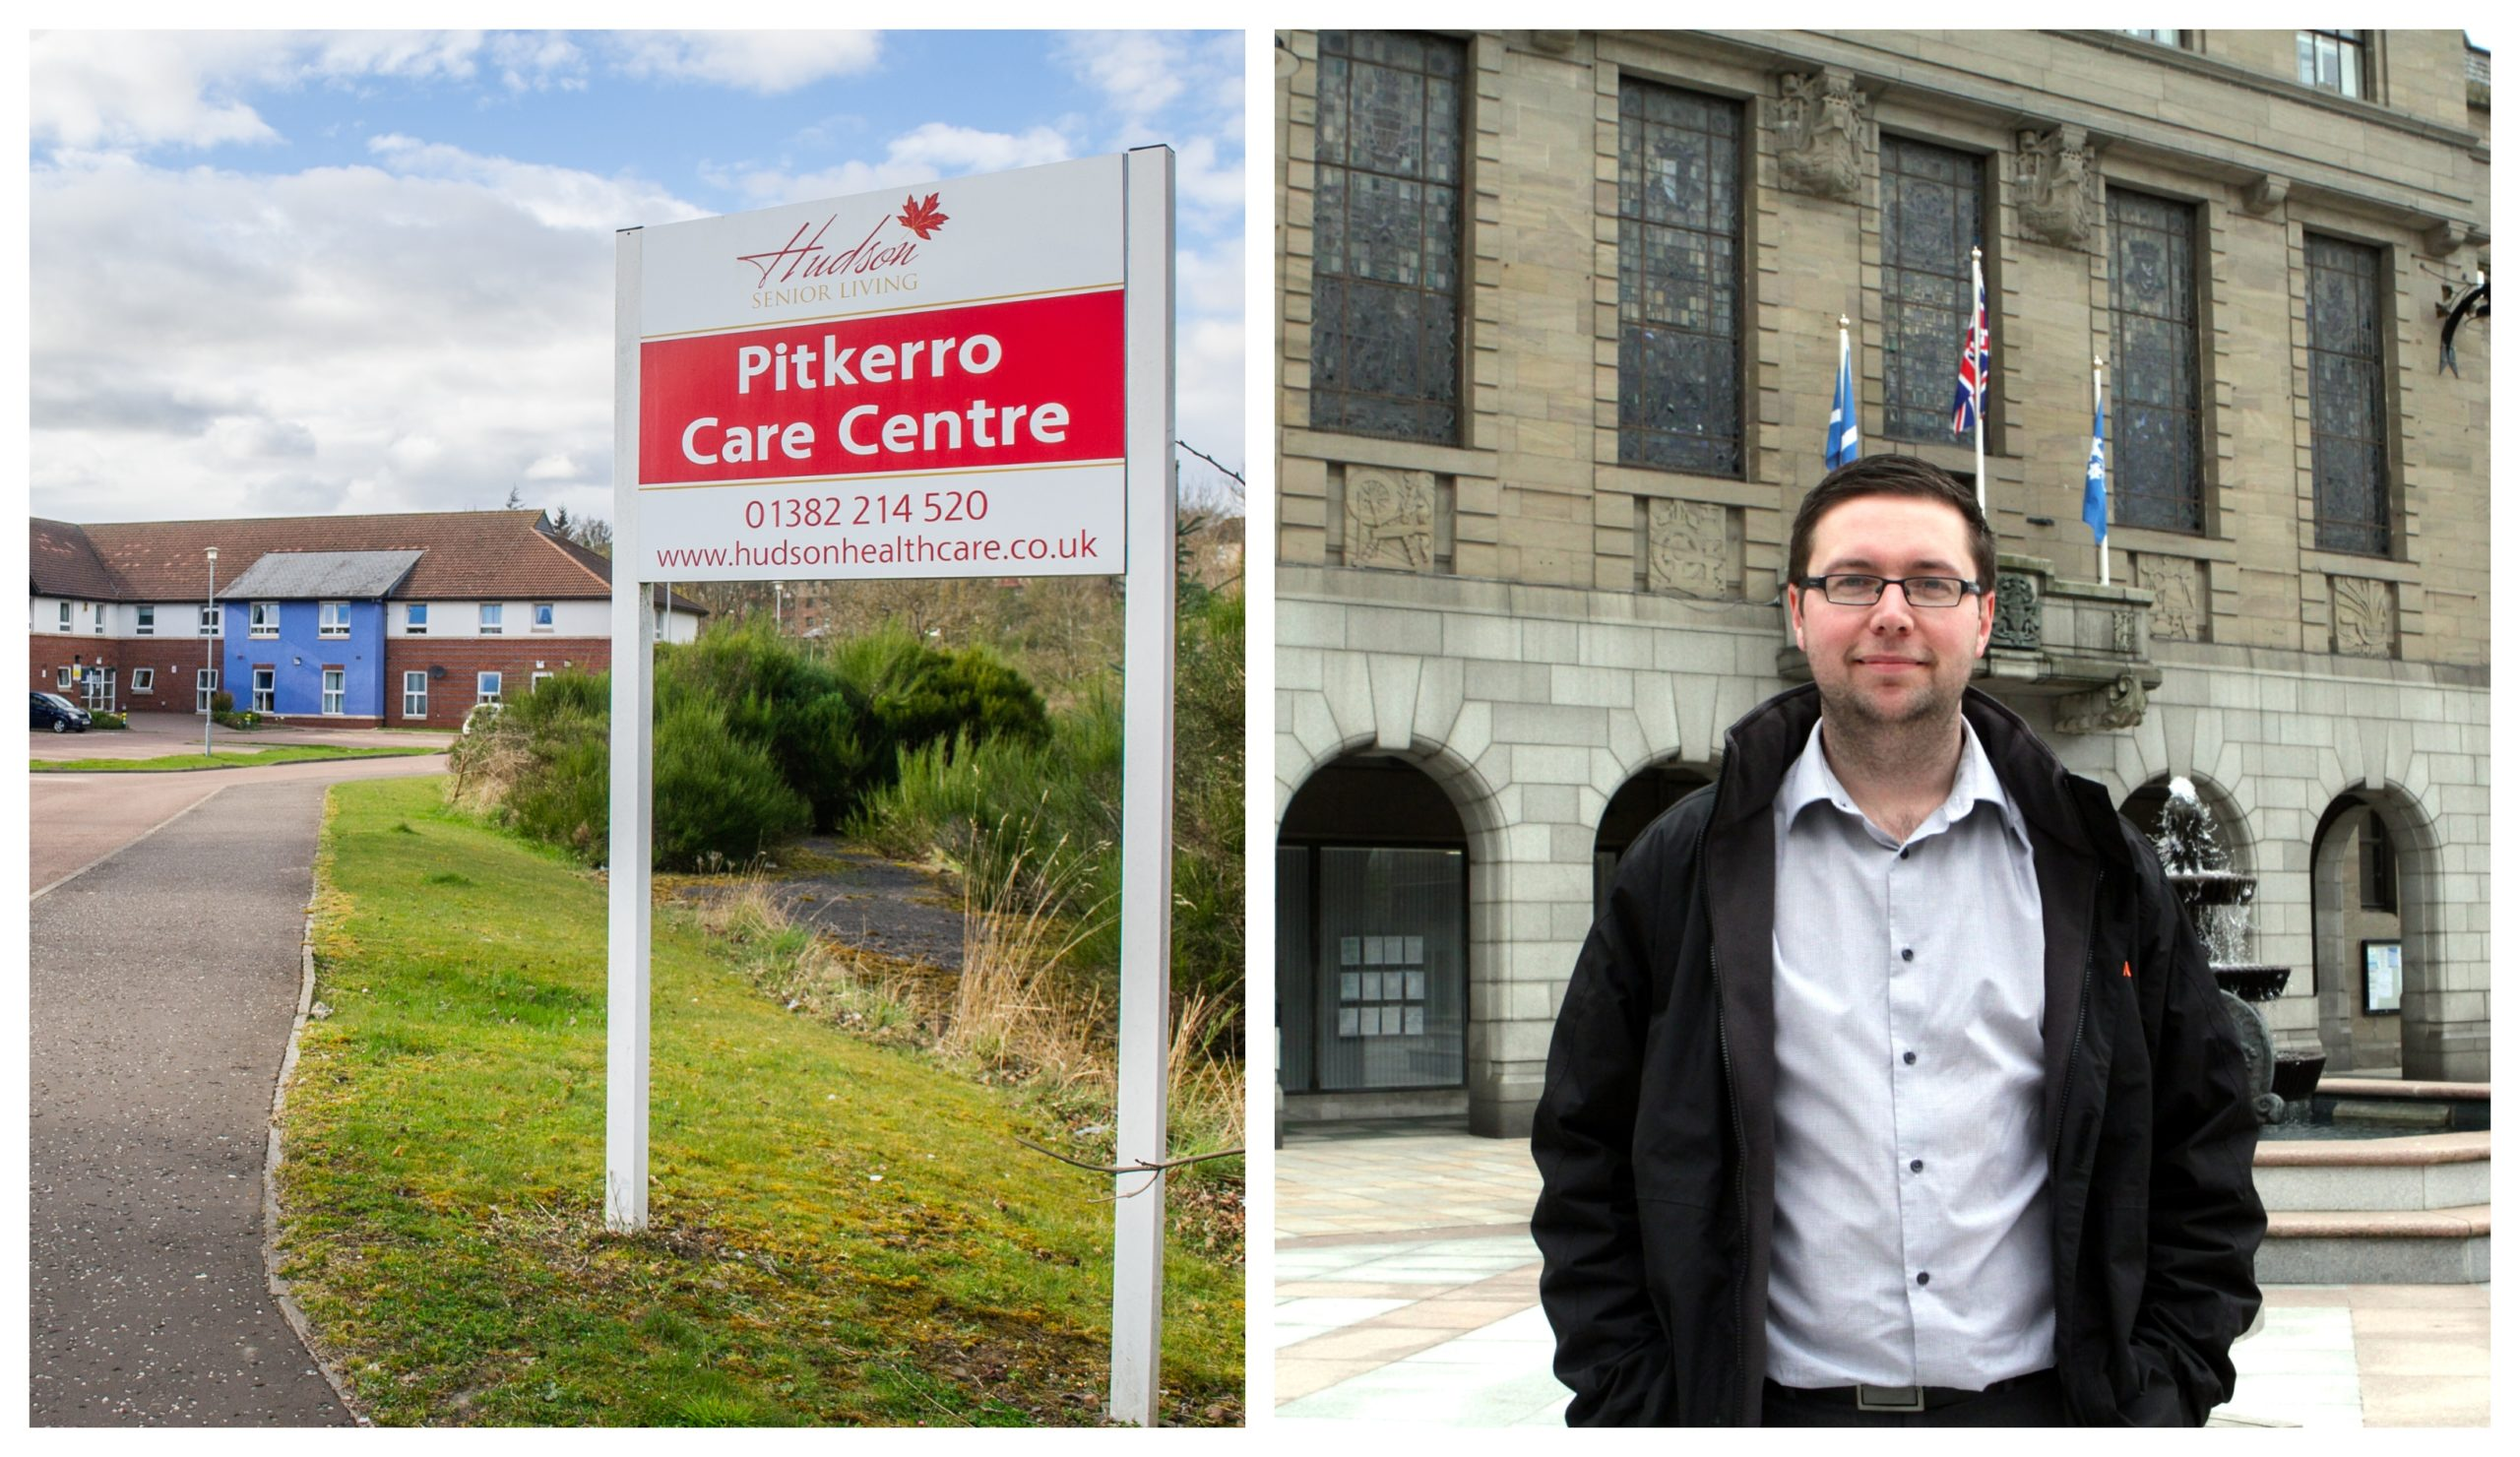 GMB Scotland's Drew Duffy (right) has criticised Pitkerro Care Centre's policies